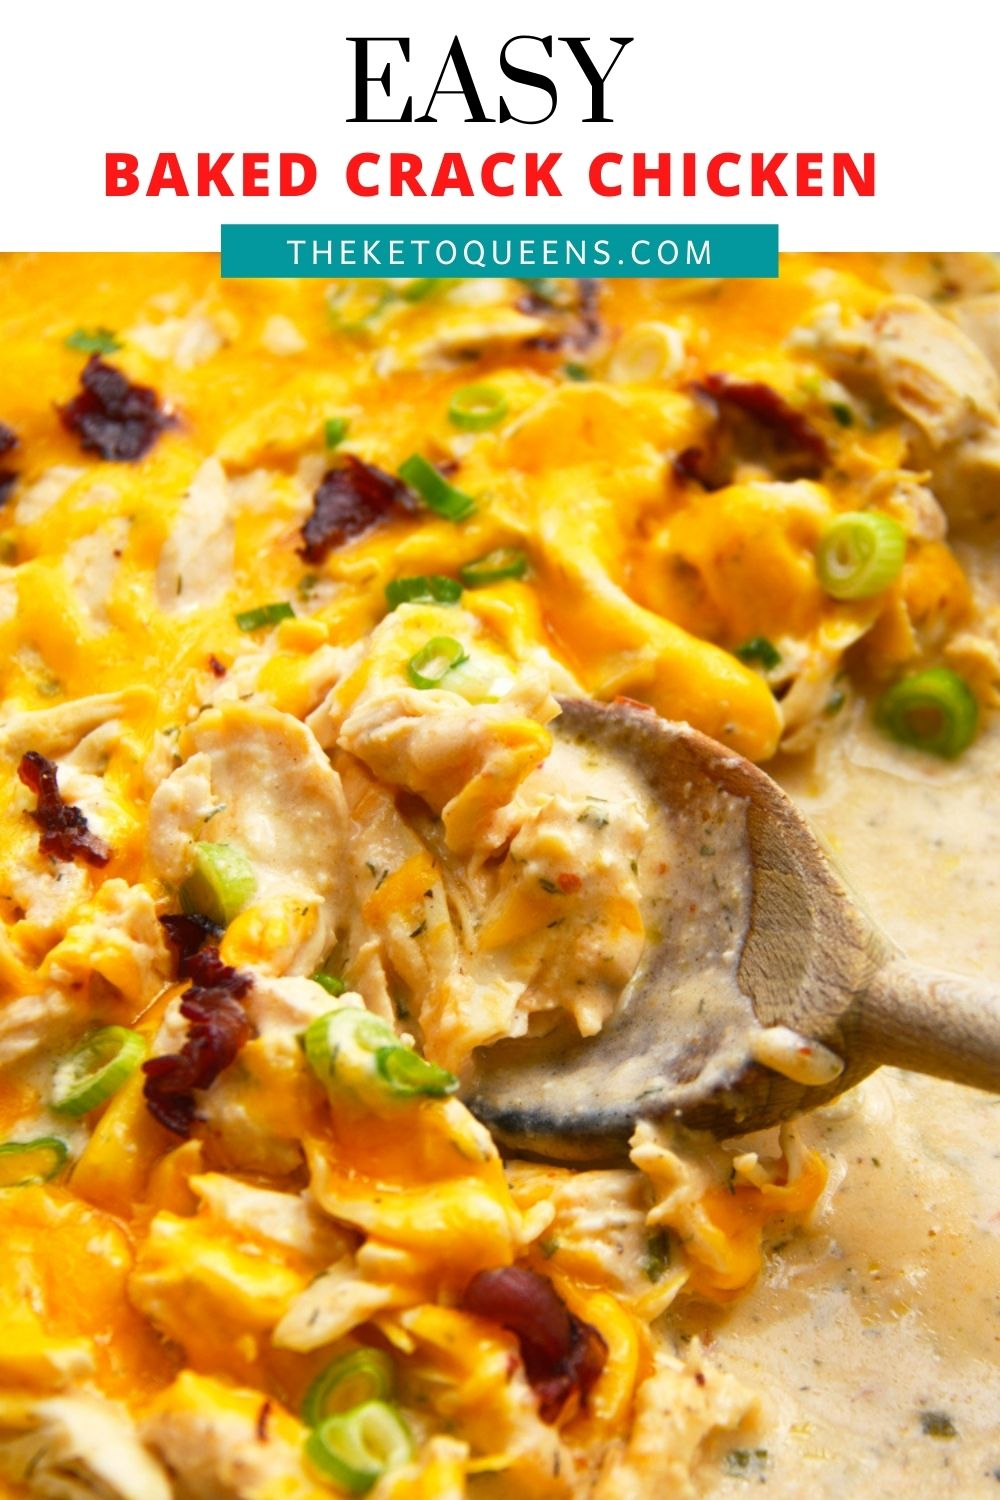 This baked crack chicken is a delicious low carb dinner meal! If you are a chicken and cheese lover then this recipe is for you! It is oven baked so it is super easy to make and it makes a delicious dinner or it can also be eaten as a dip.